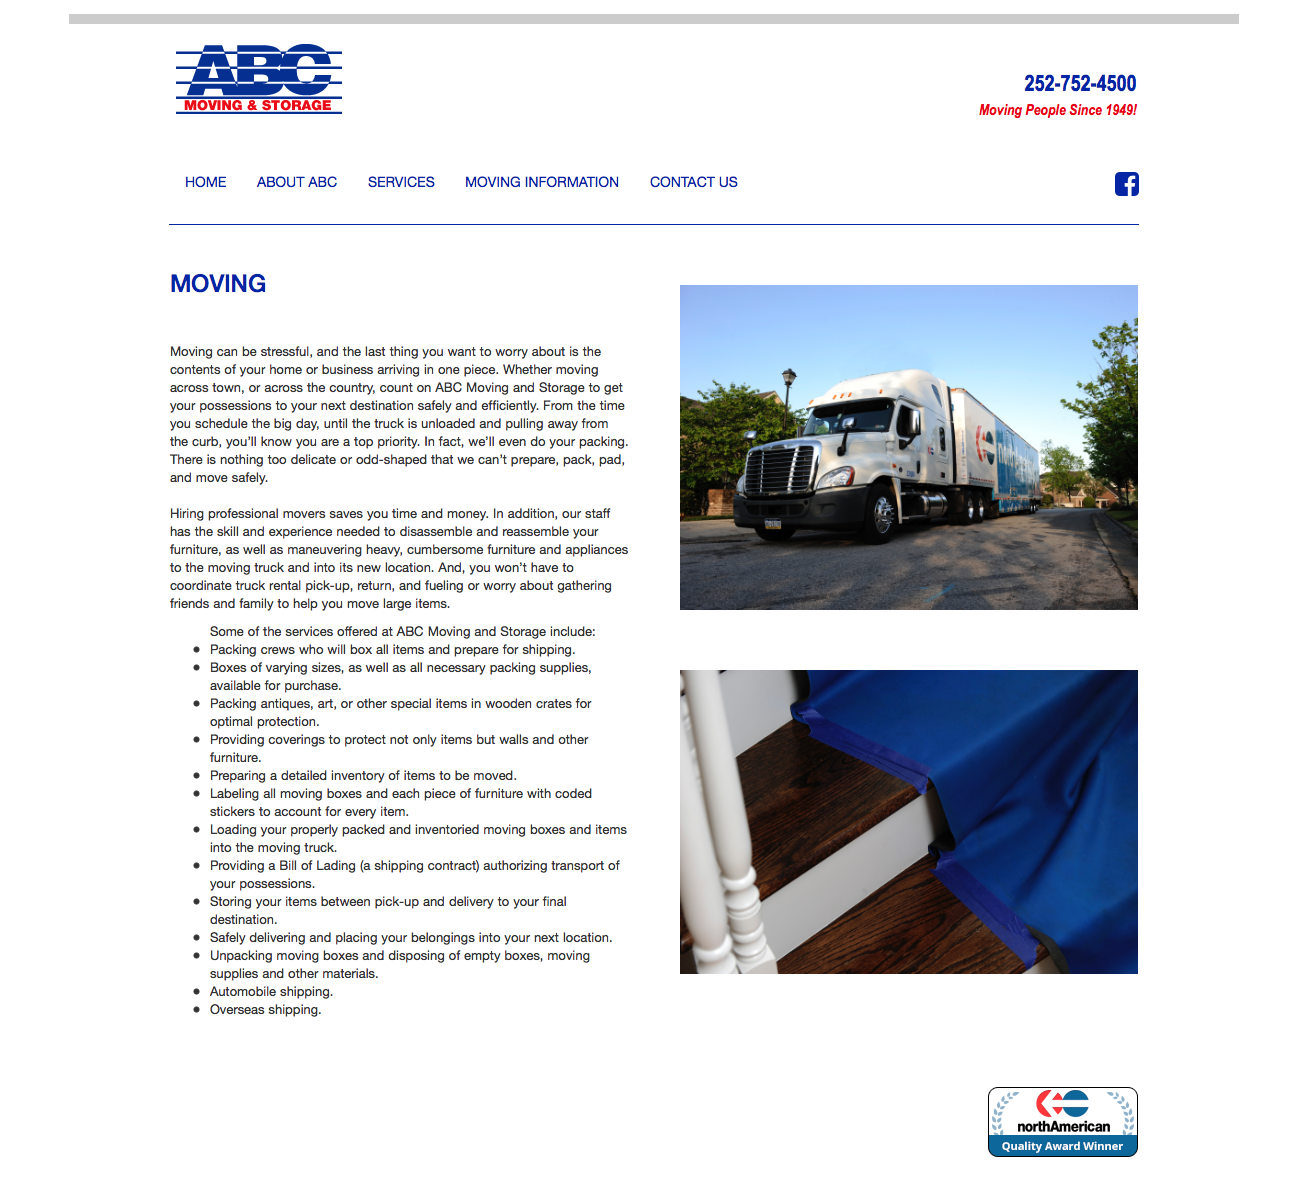 ABC Moving & Storage website build by Igoe Creative